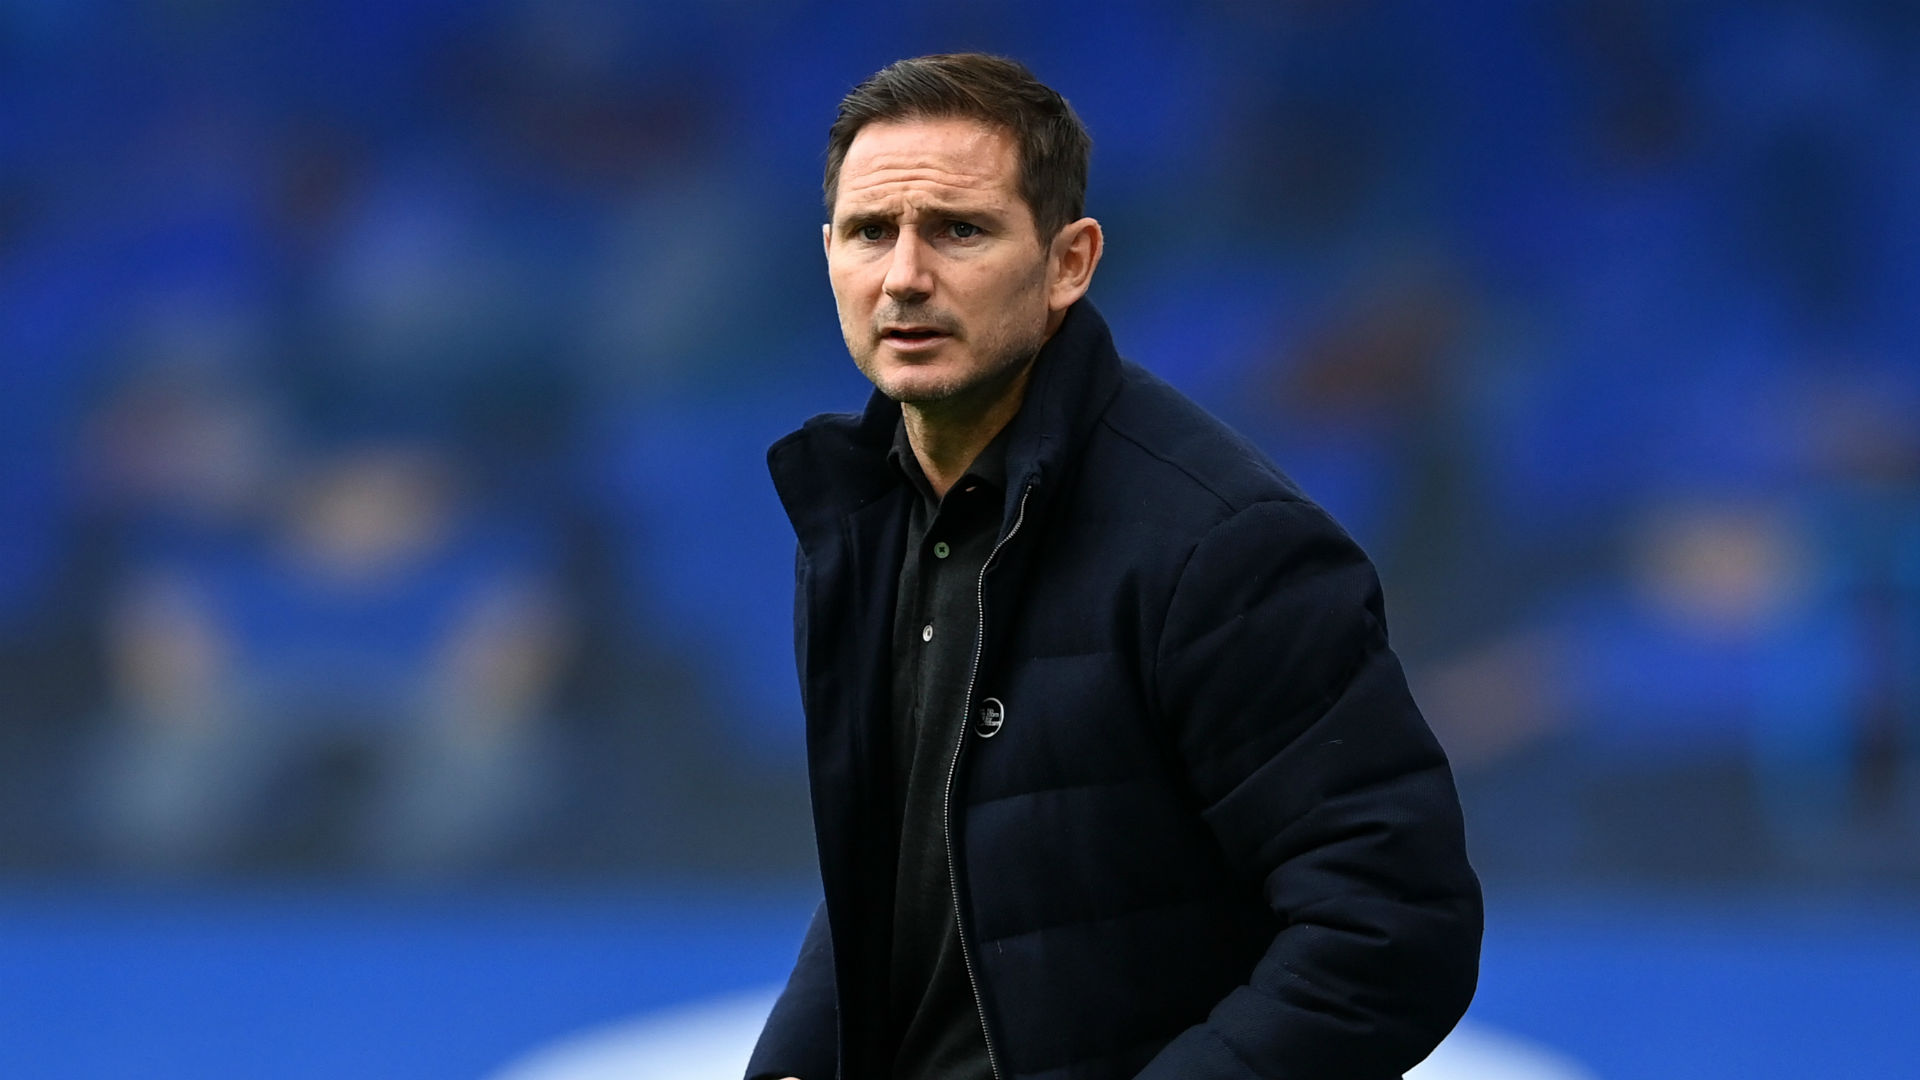 Lampard warns table-topping Chelsea against getting carried away